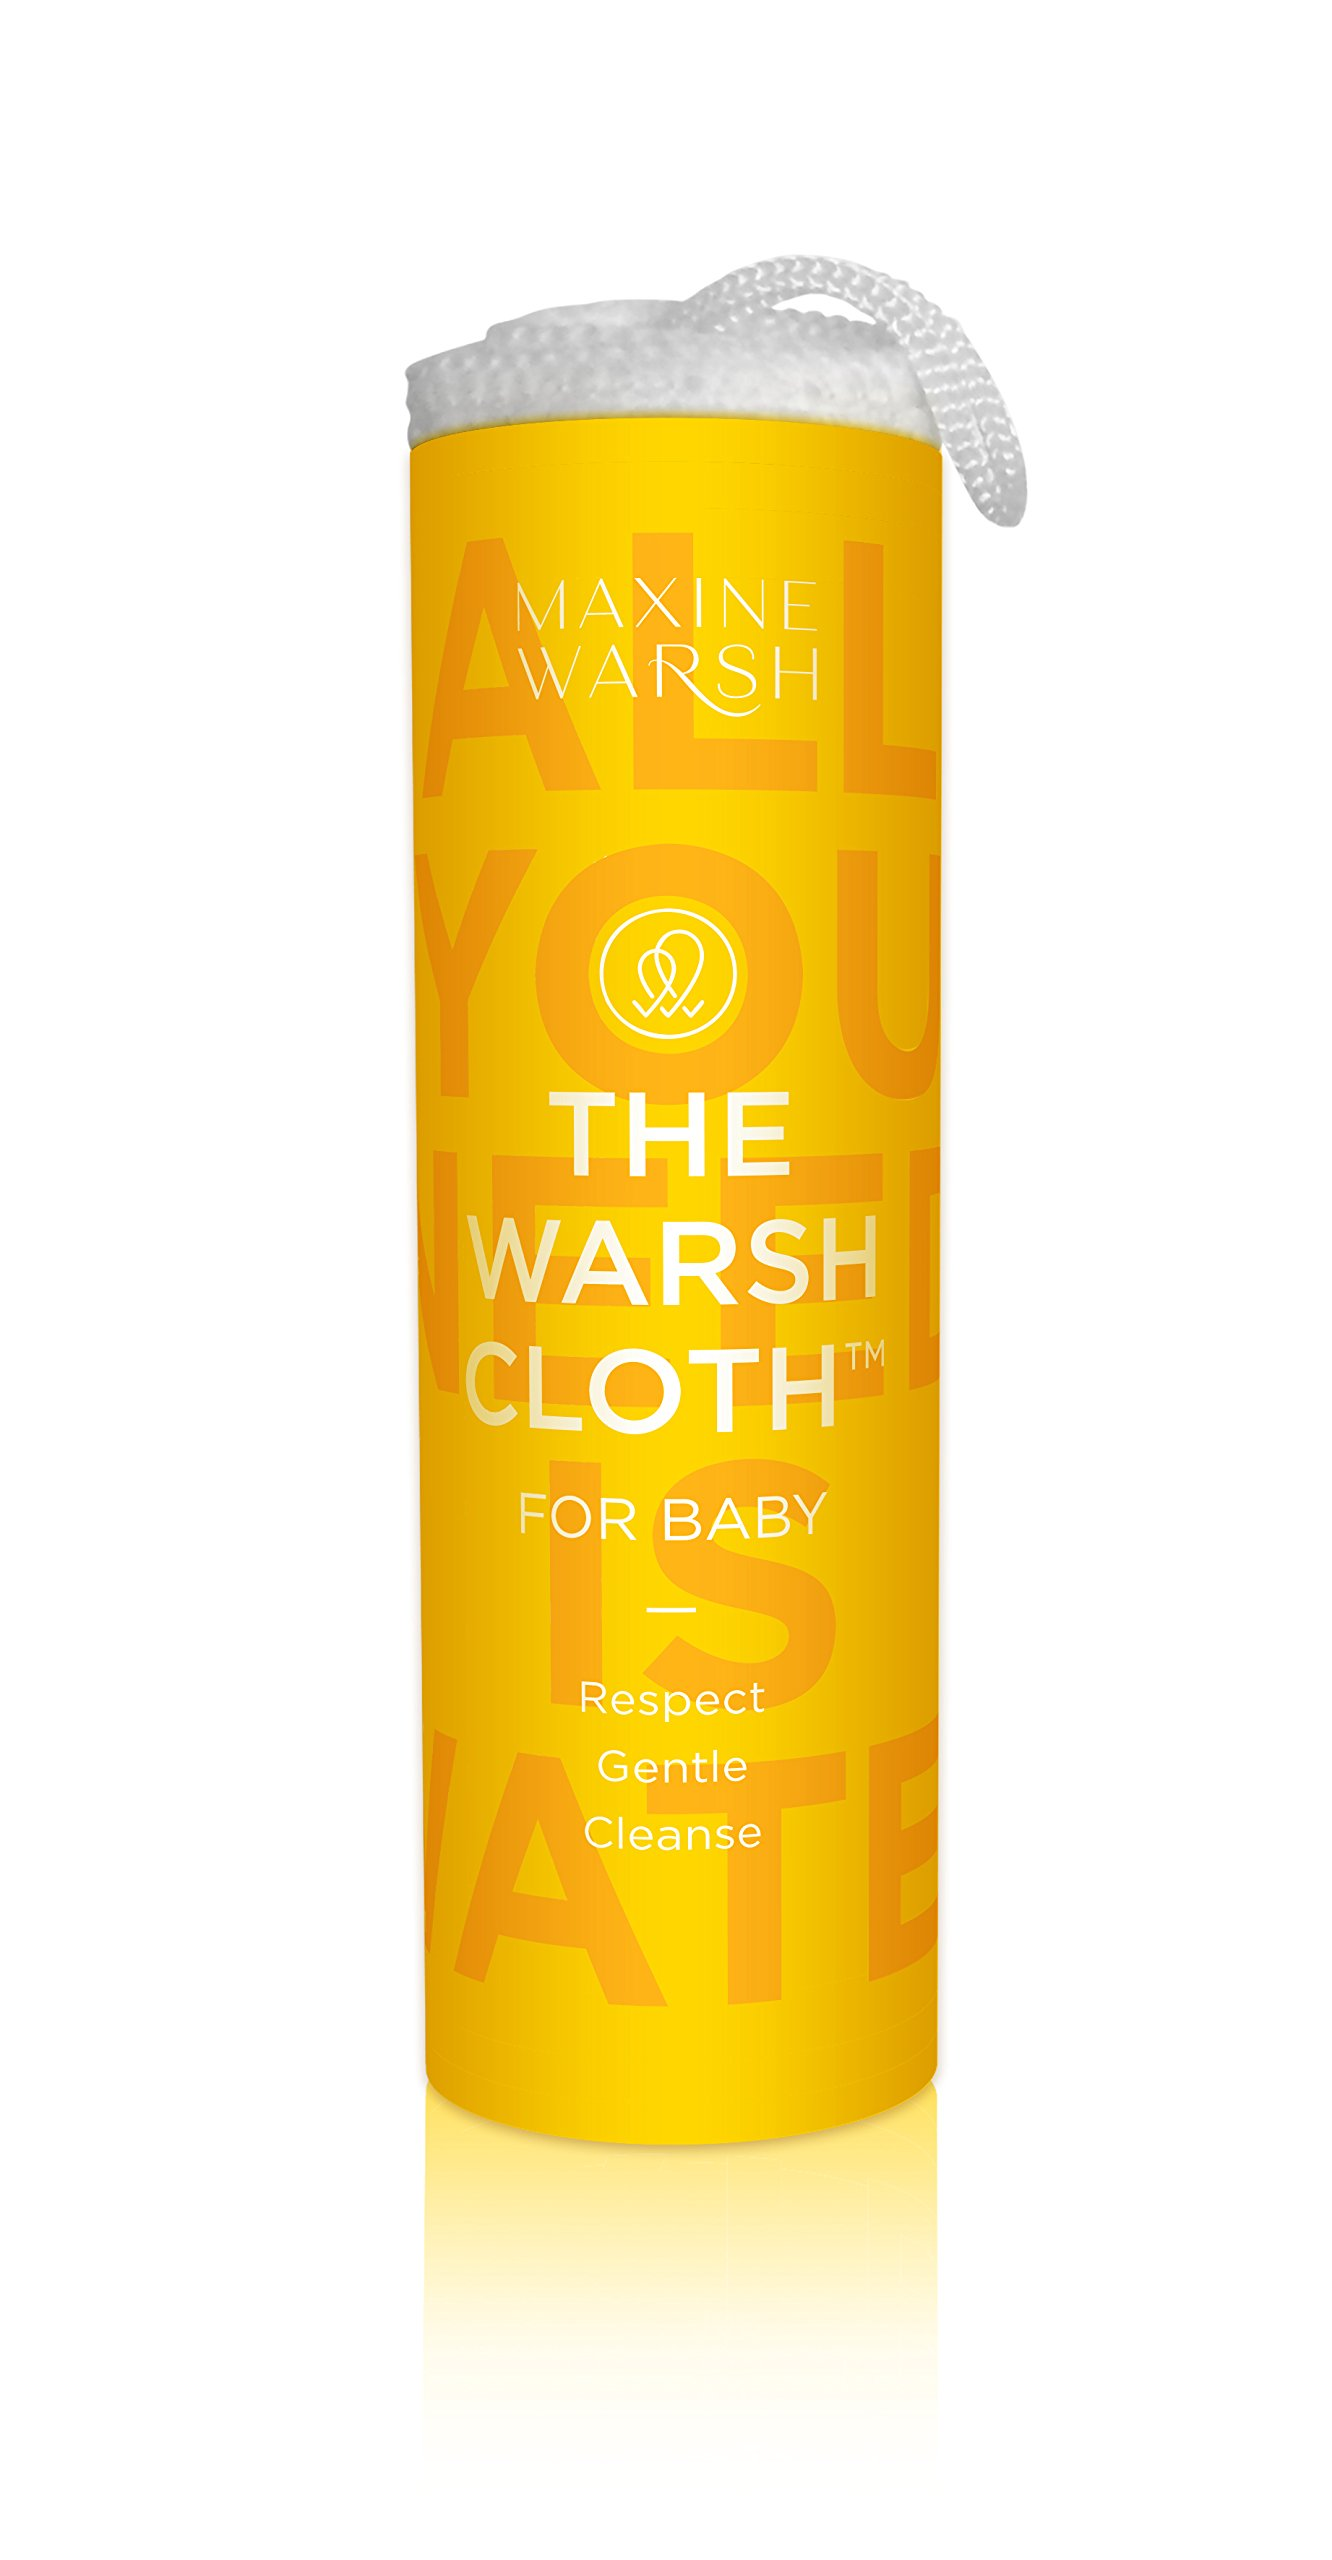 Baby Warsh Cloths-4 Pack by Warsh Cloths